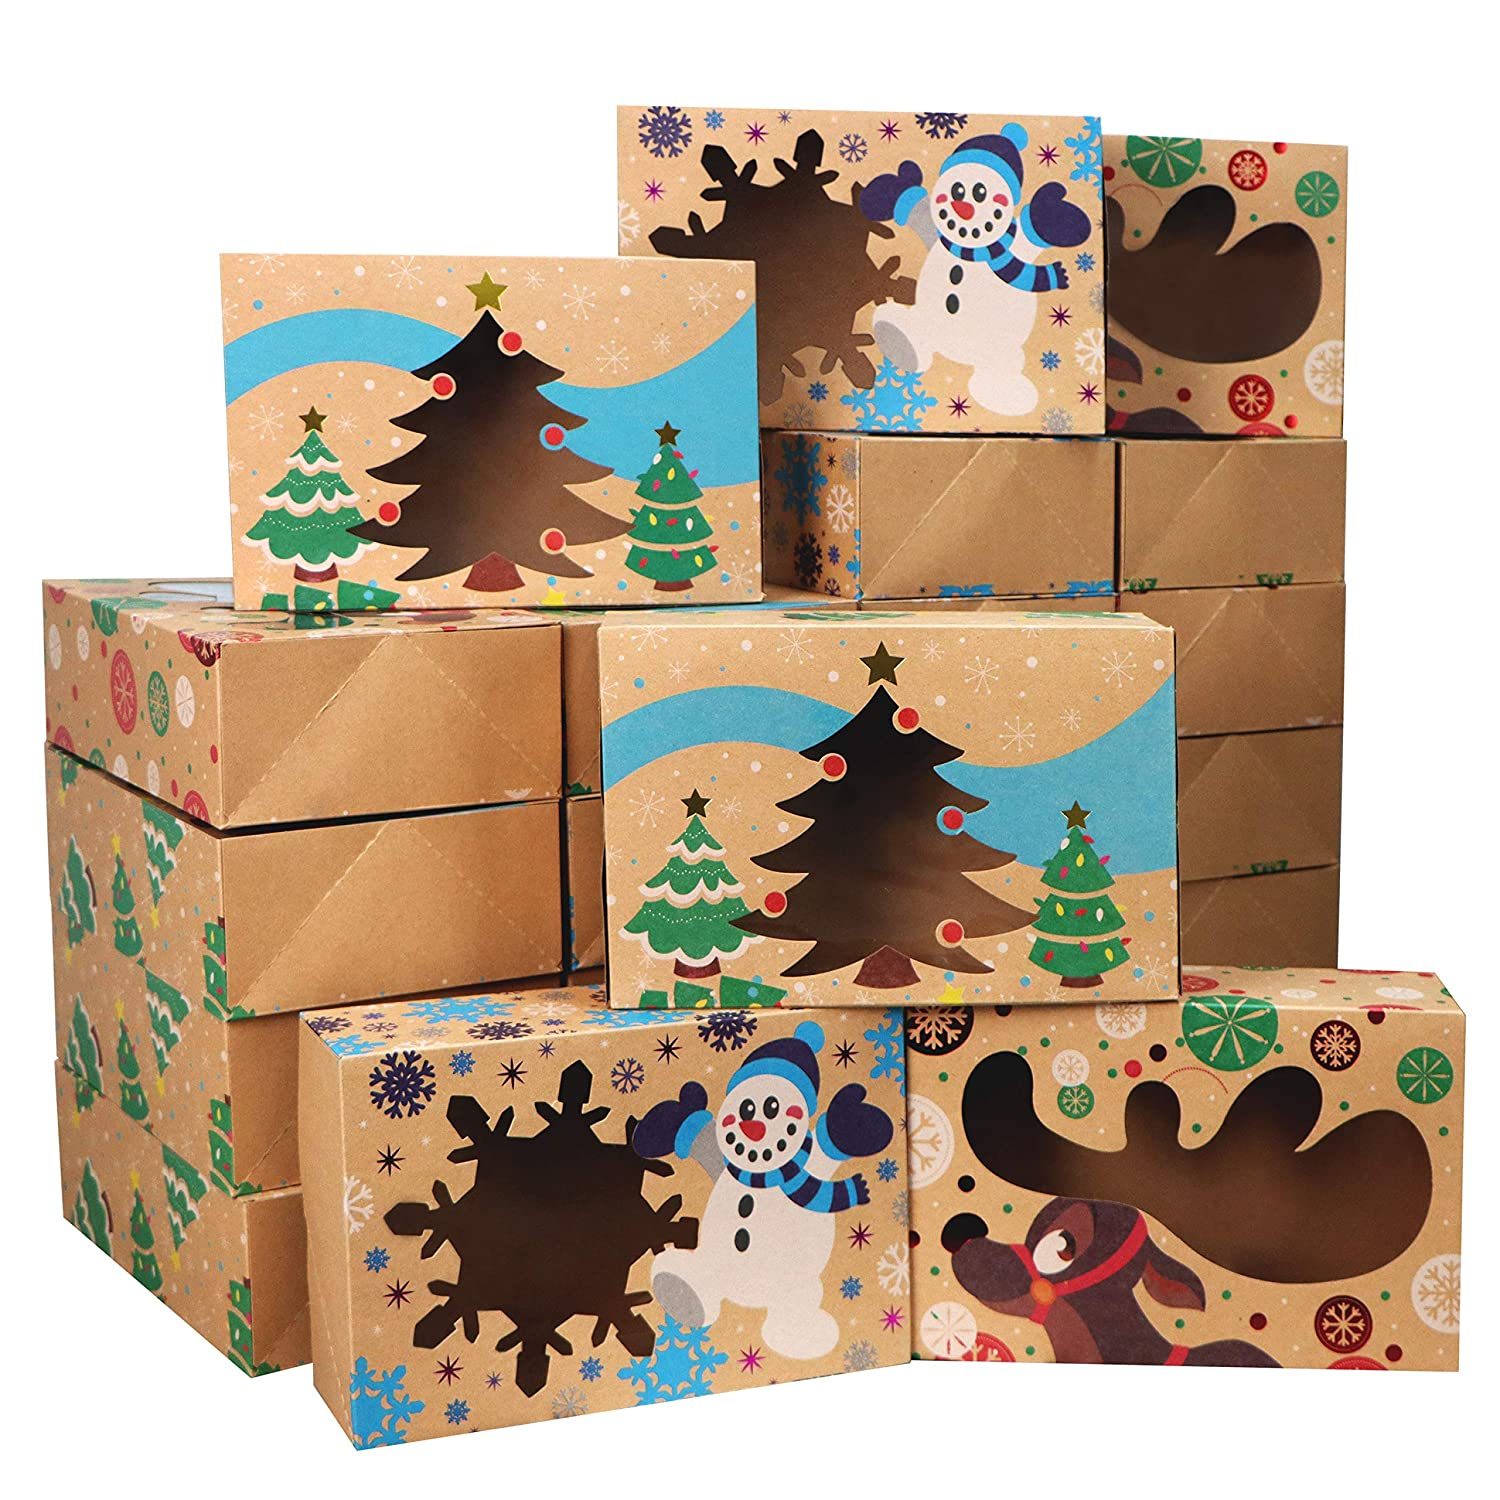 24 Christmas Bakery Treat Boxes for Doughnut and Cookie, Brown Kraft Cookie Boxes for Holiday Pastries, Cupcakes, Brownies, Gift Giving